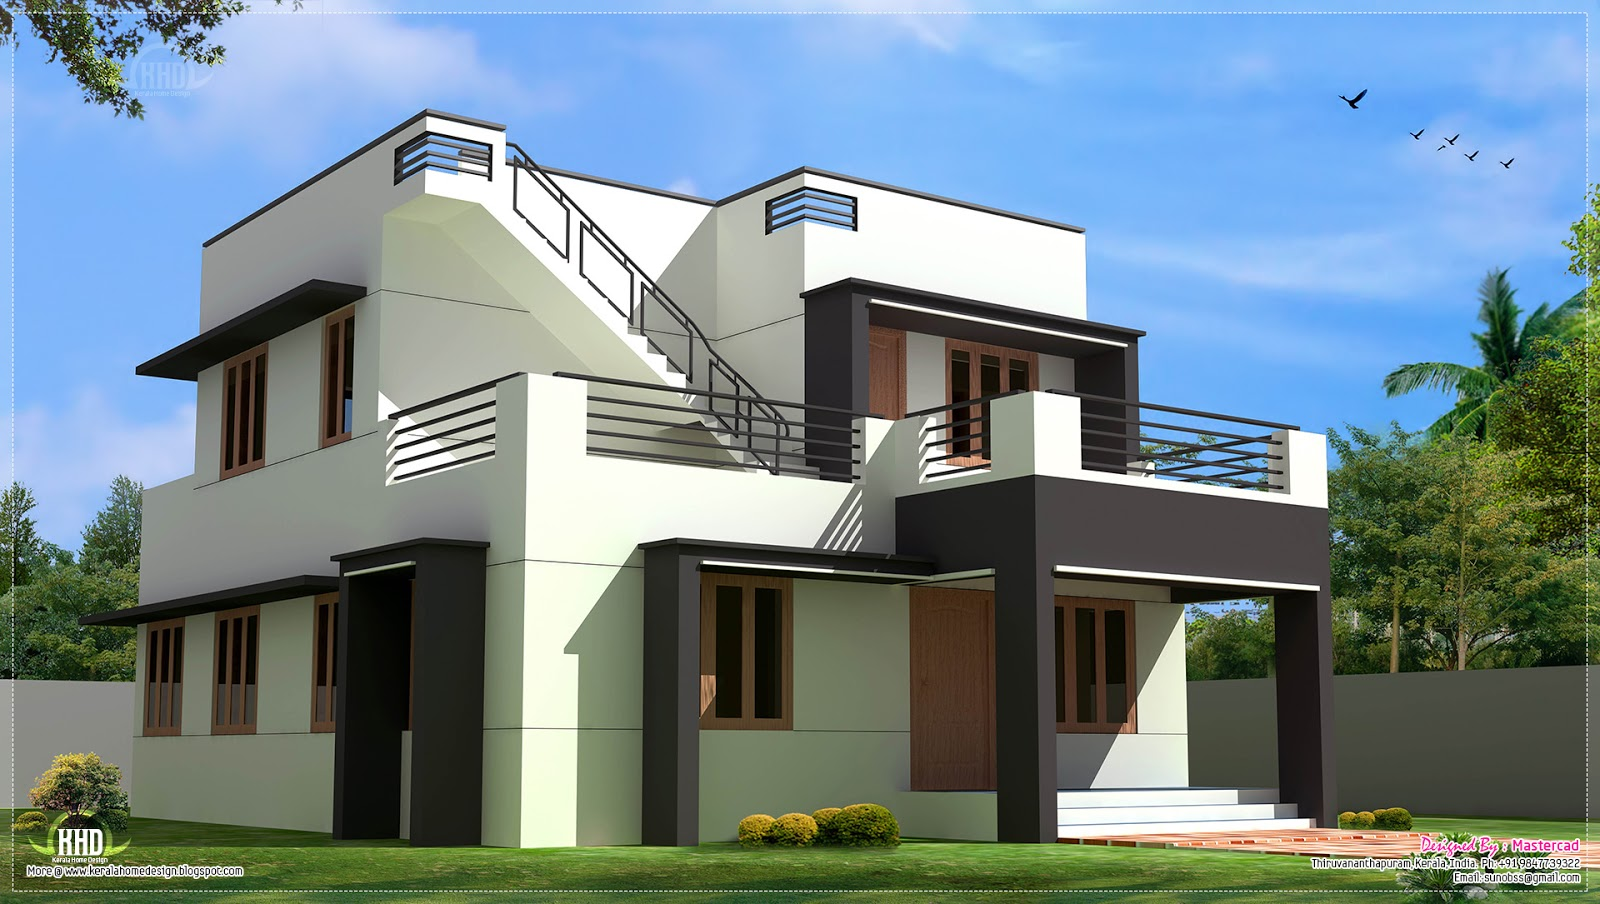 Modern house design in 1700 kerala home design Modern home ideas